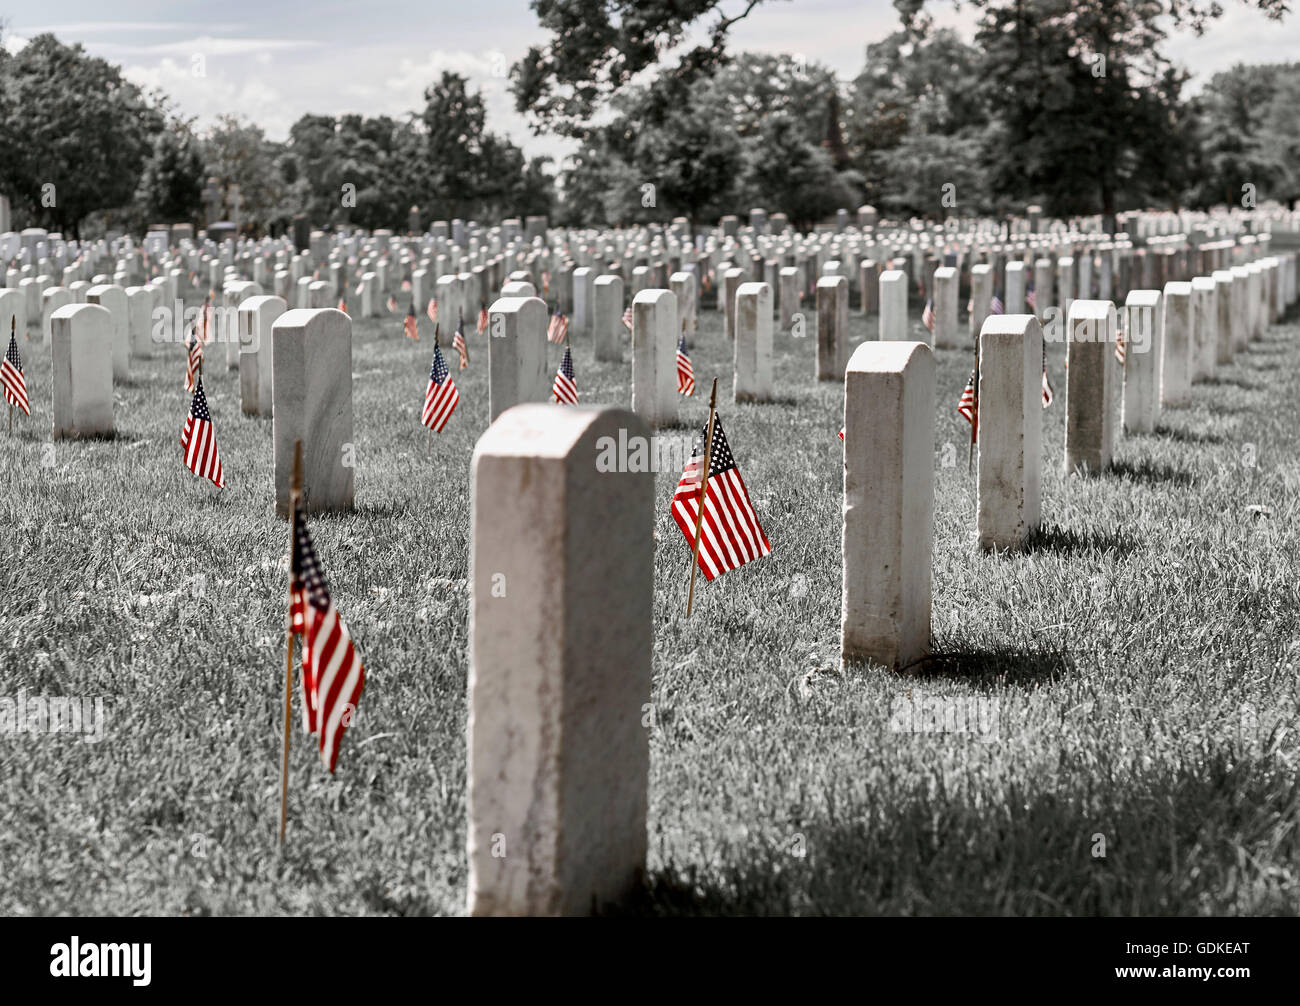 United States Flag on gravesites at Arlington National Cemetery on Memorial Day - Stock Image